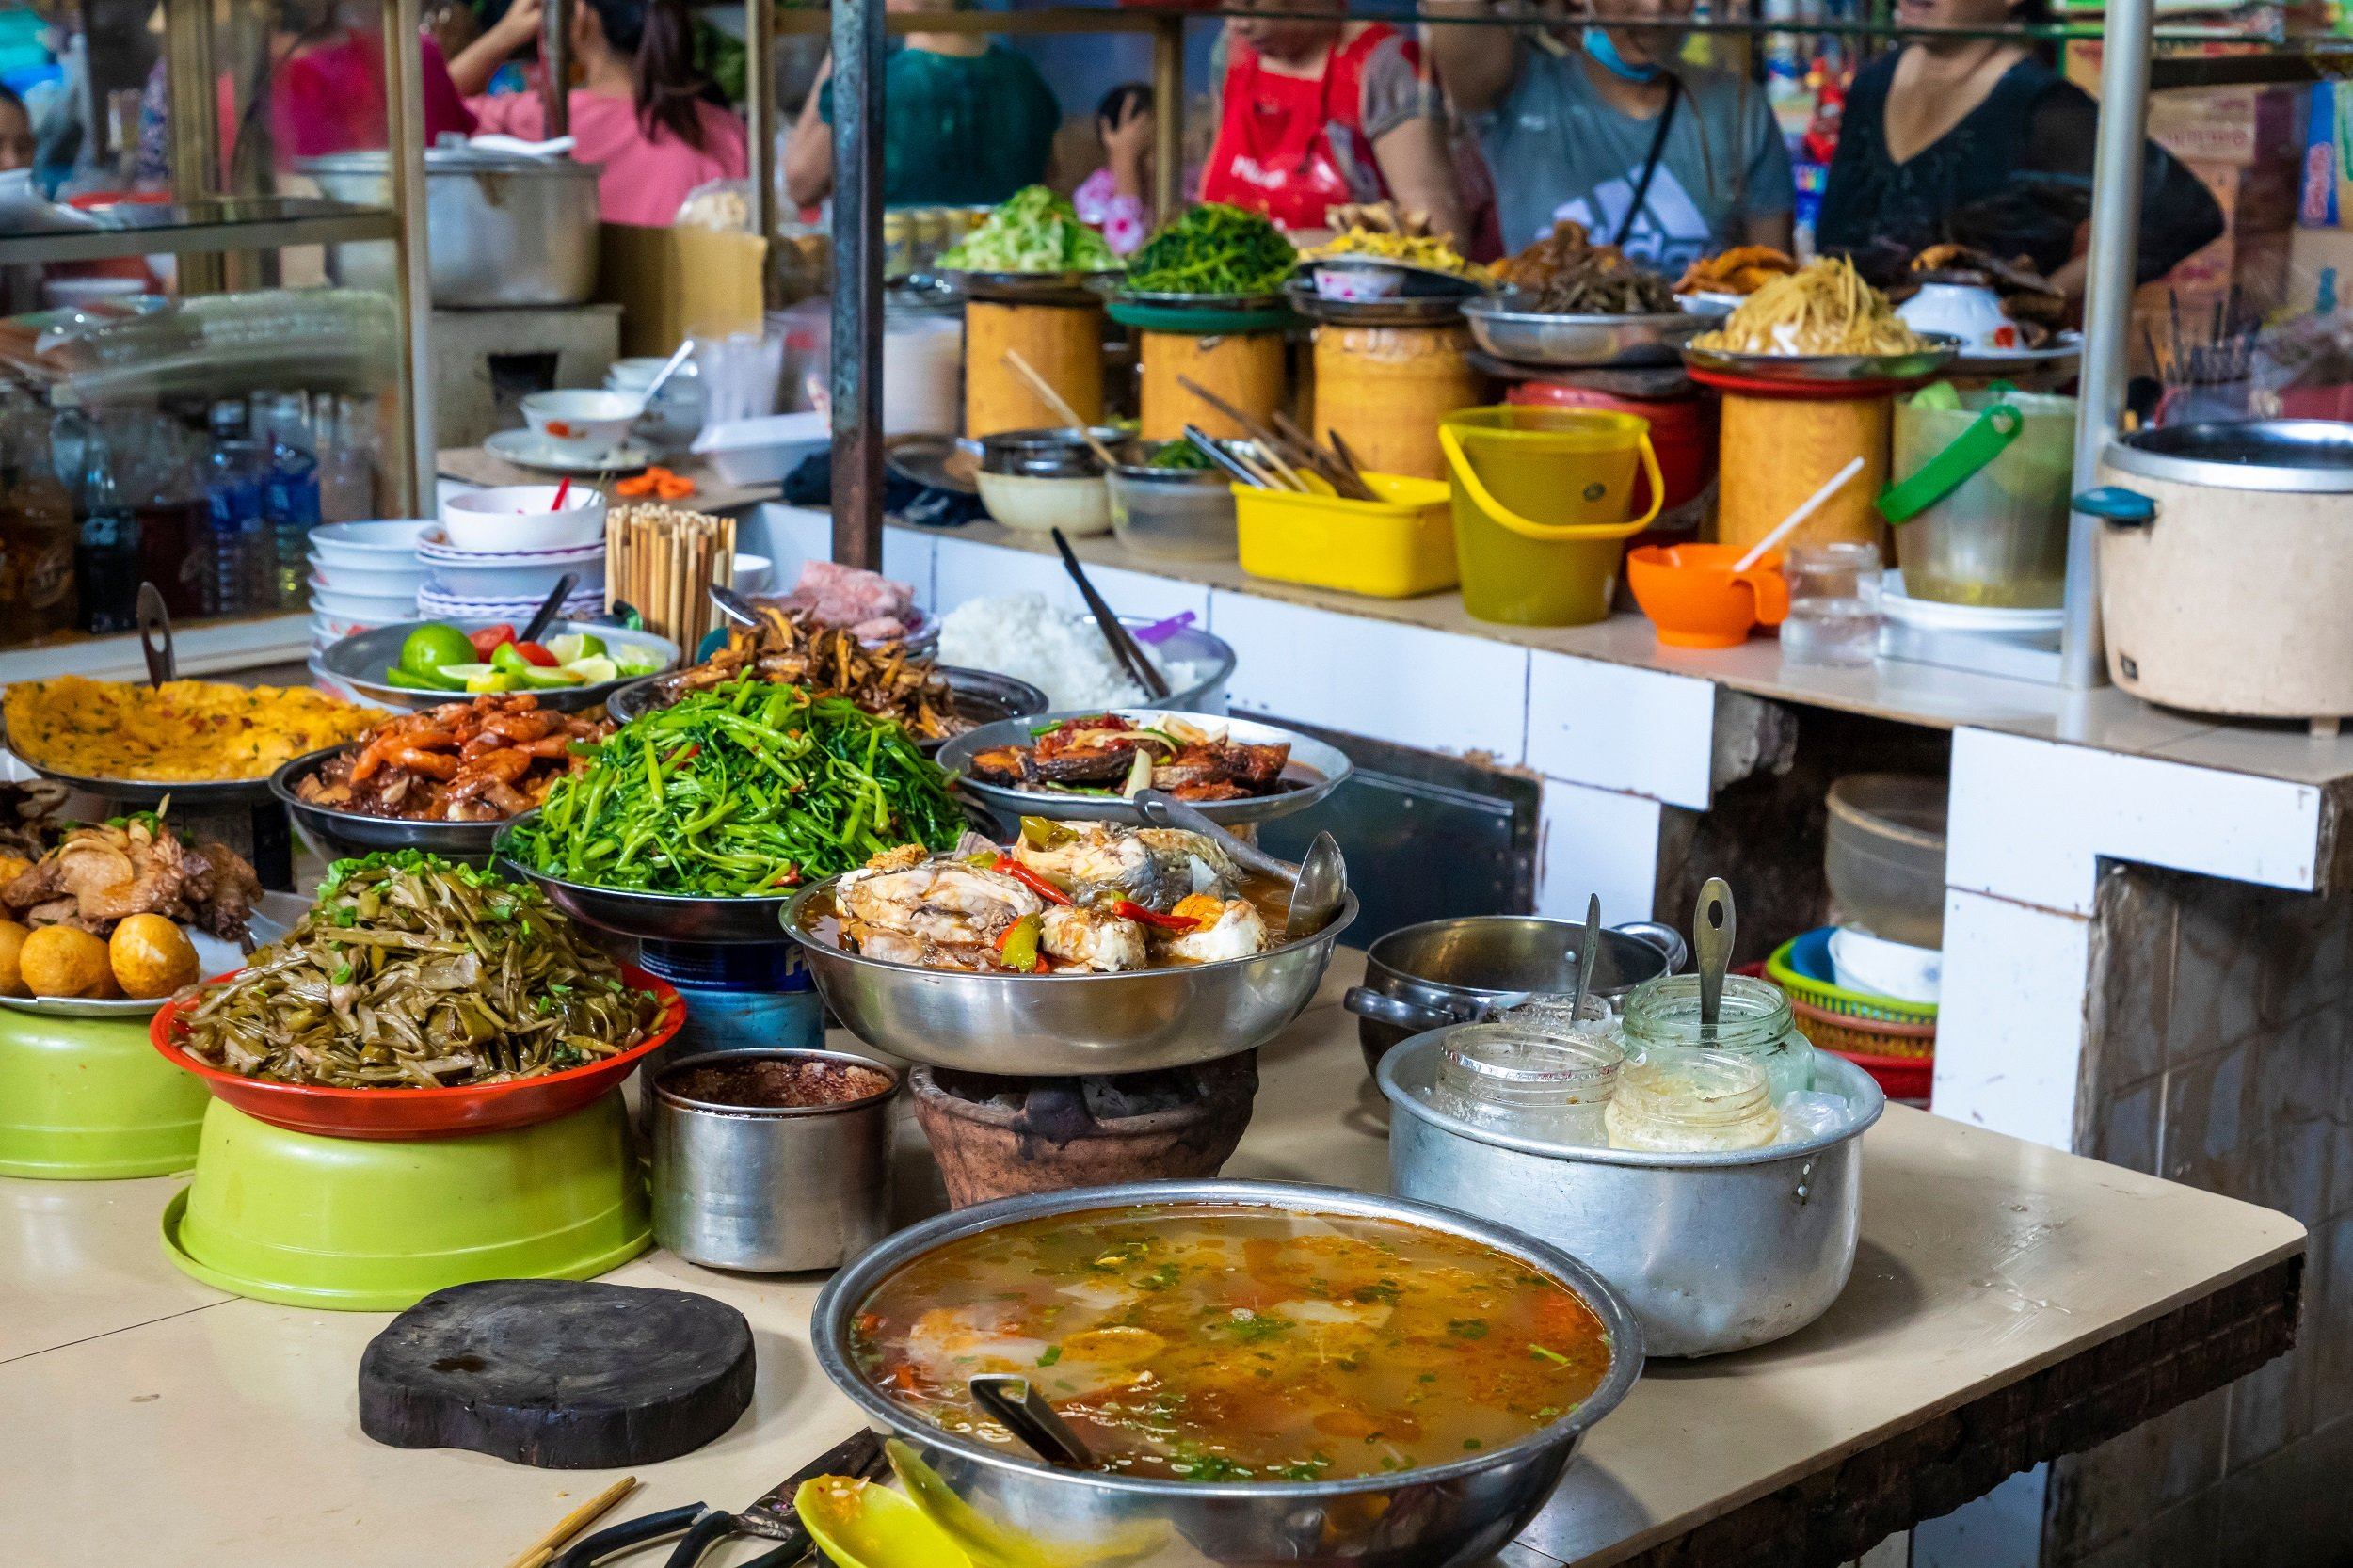 Your Guide Will Teach You More About The Foods And Ingredients Of The Delicious Sttreet Food On The Hue Street Food Tour